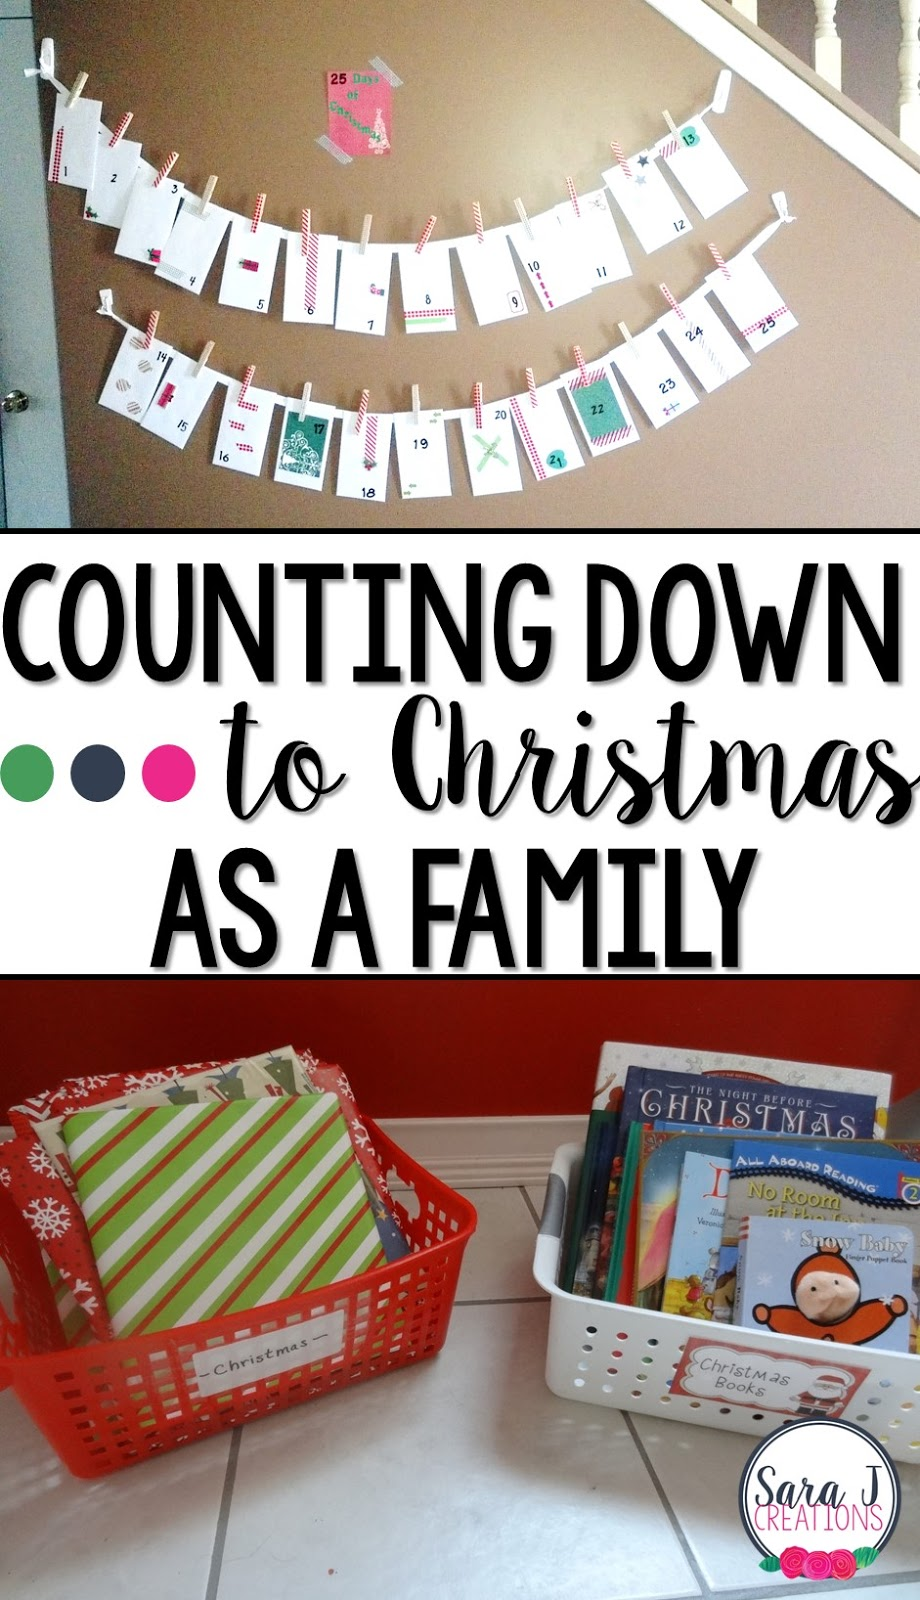 Ideas for counting down to Christmas and start traditions with your family.